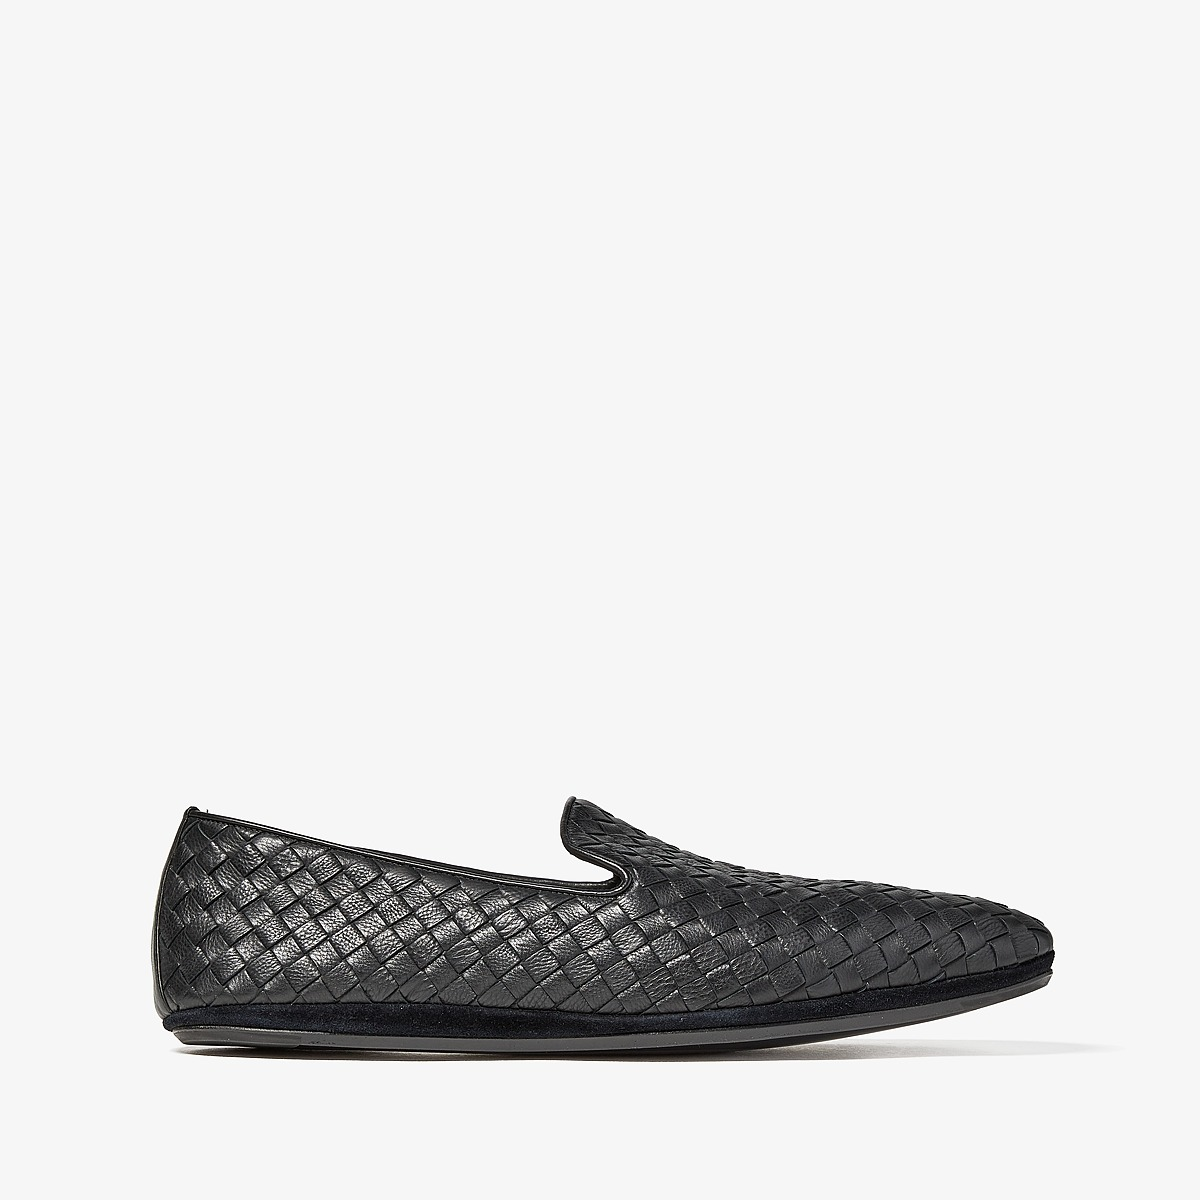 Bottega Veneta - Intrecciato Loafer (Black) Mens Flat Shoes